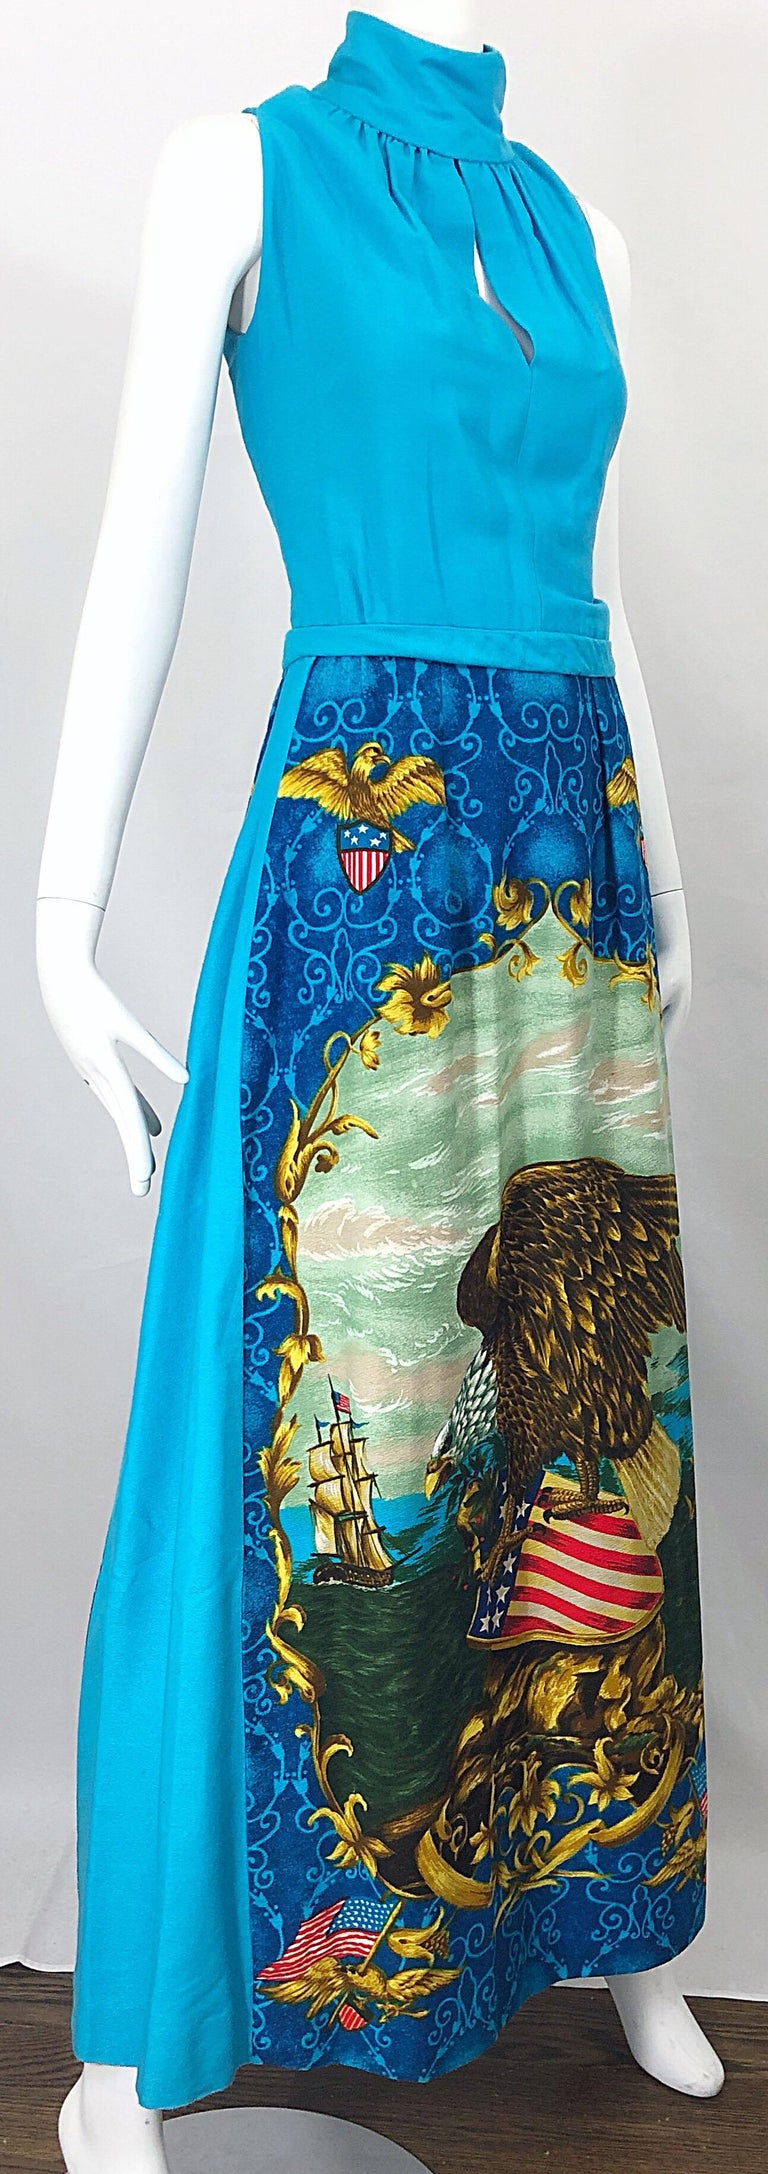 1970s Patriotic Blad Eagle USA Patriotic Red, White and Blue 70s Maxi Dress For Sale 4